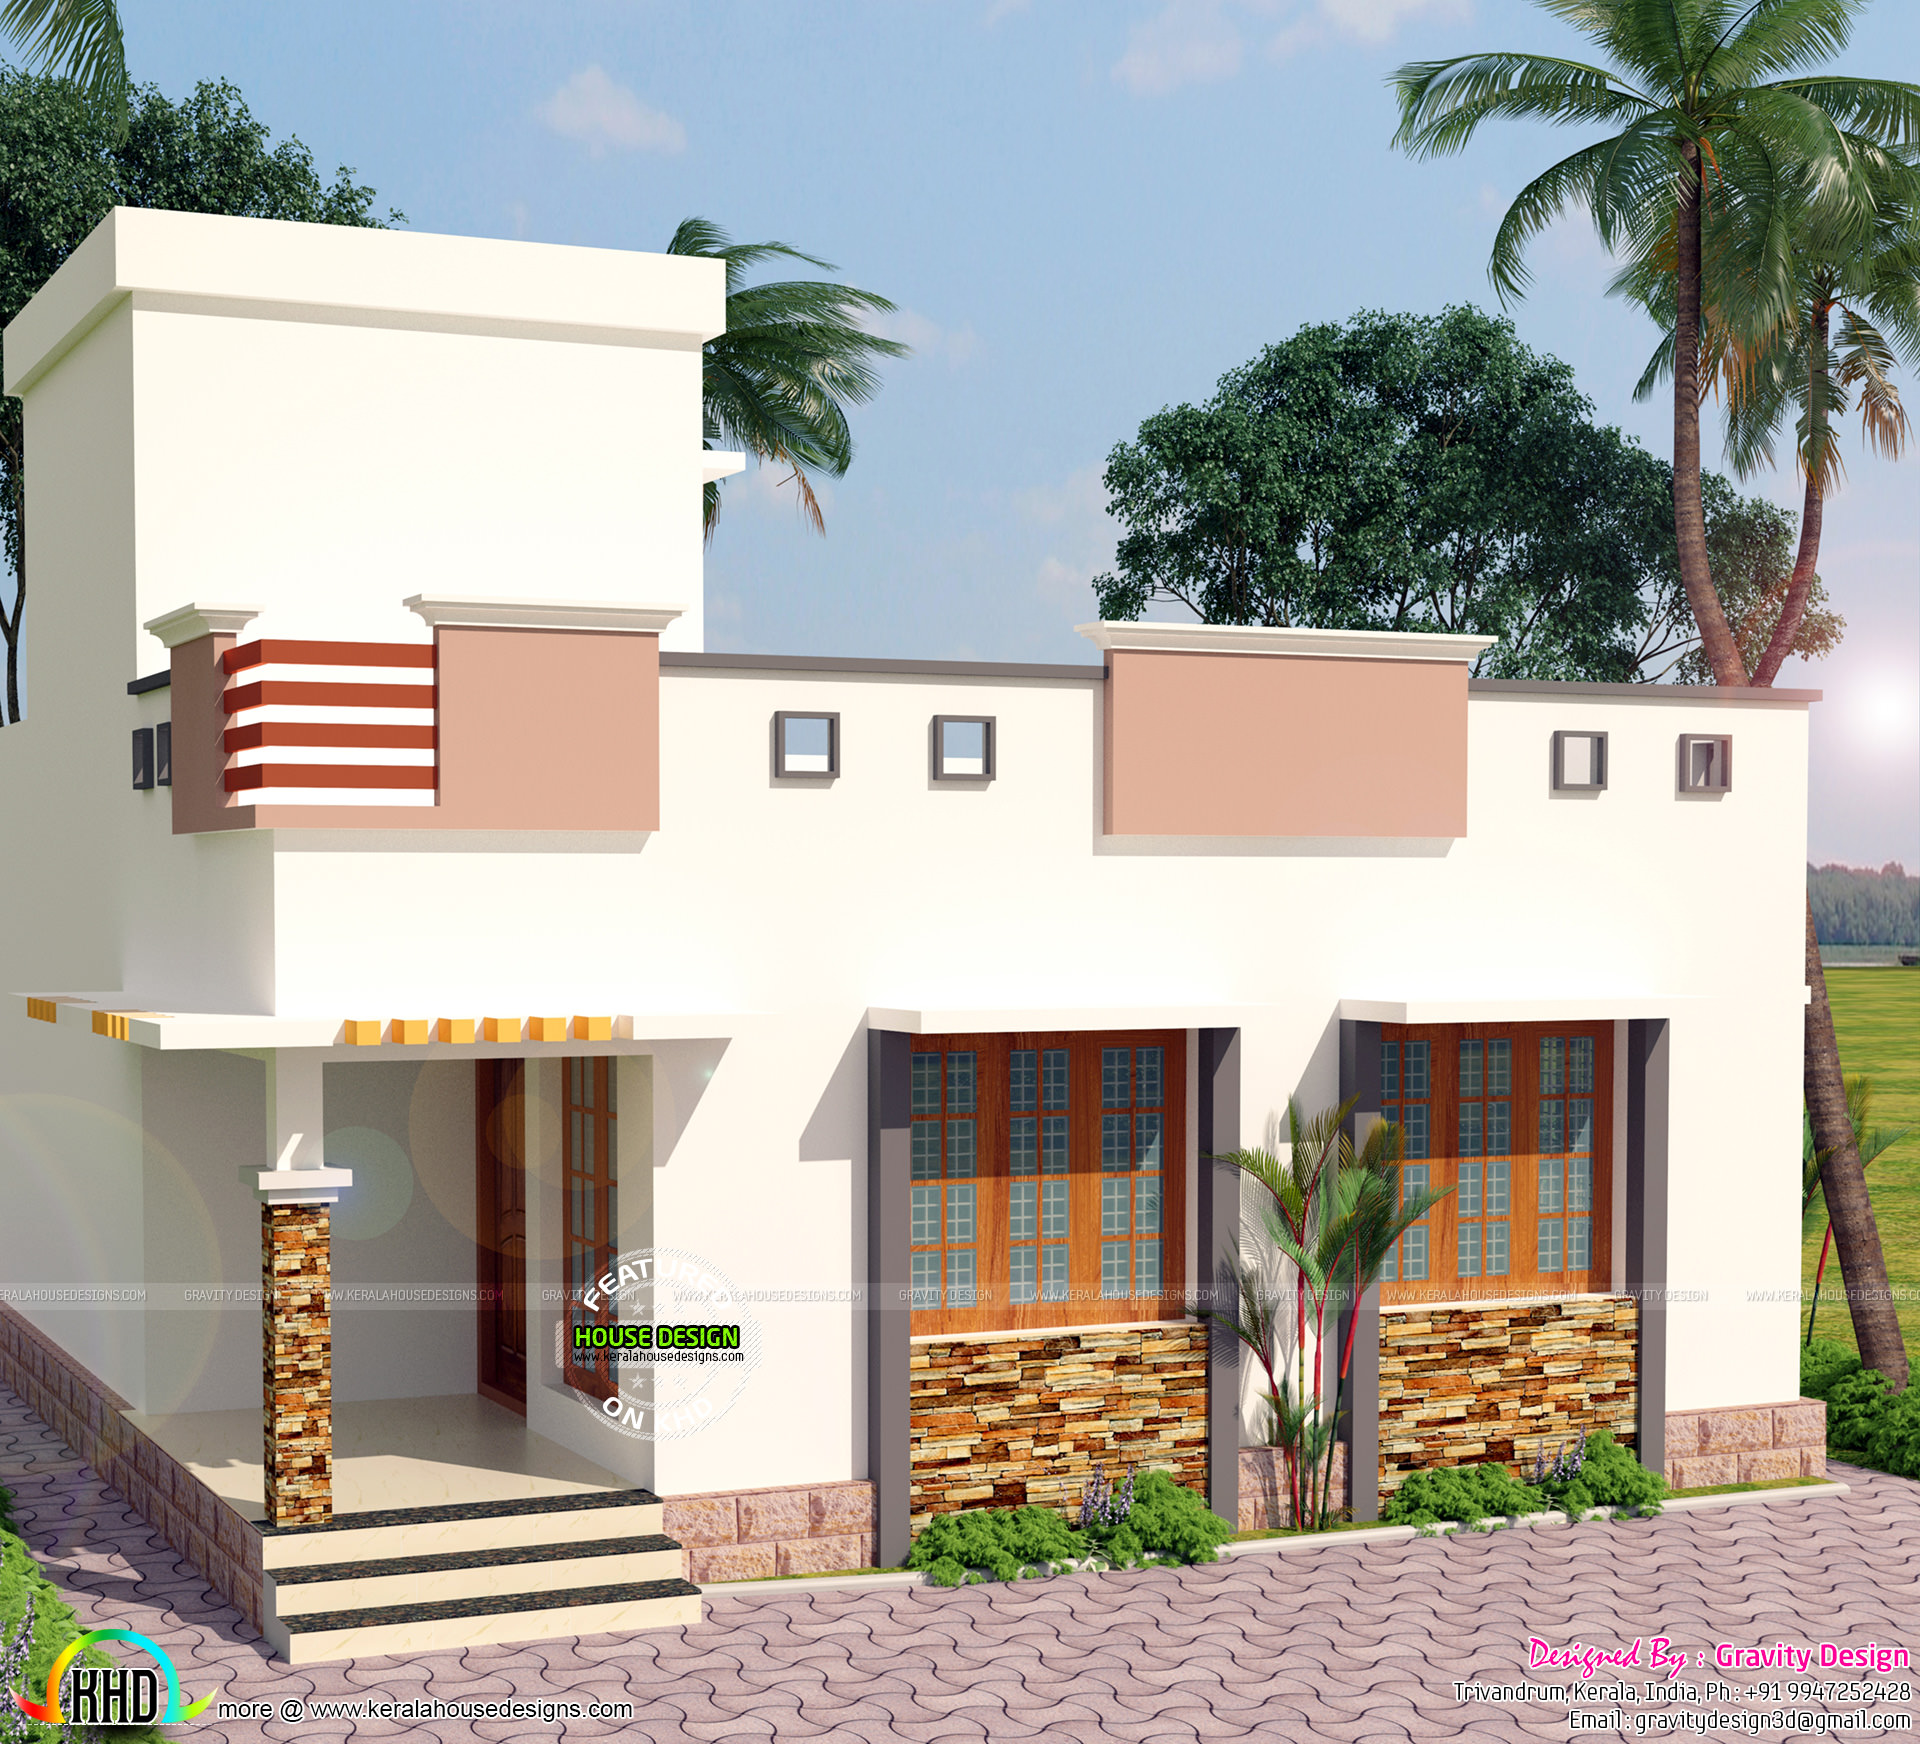 900 sq ft 2 bedroom modern home kerala home design and for Home design 900 sq feet